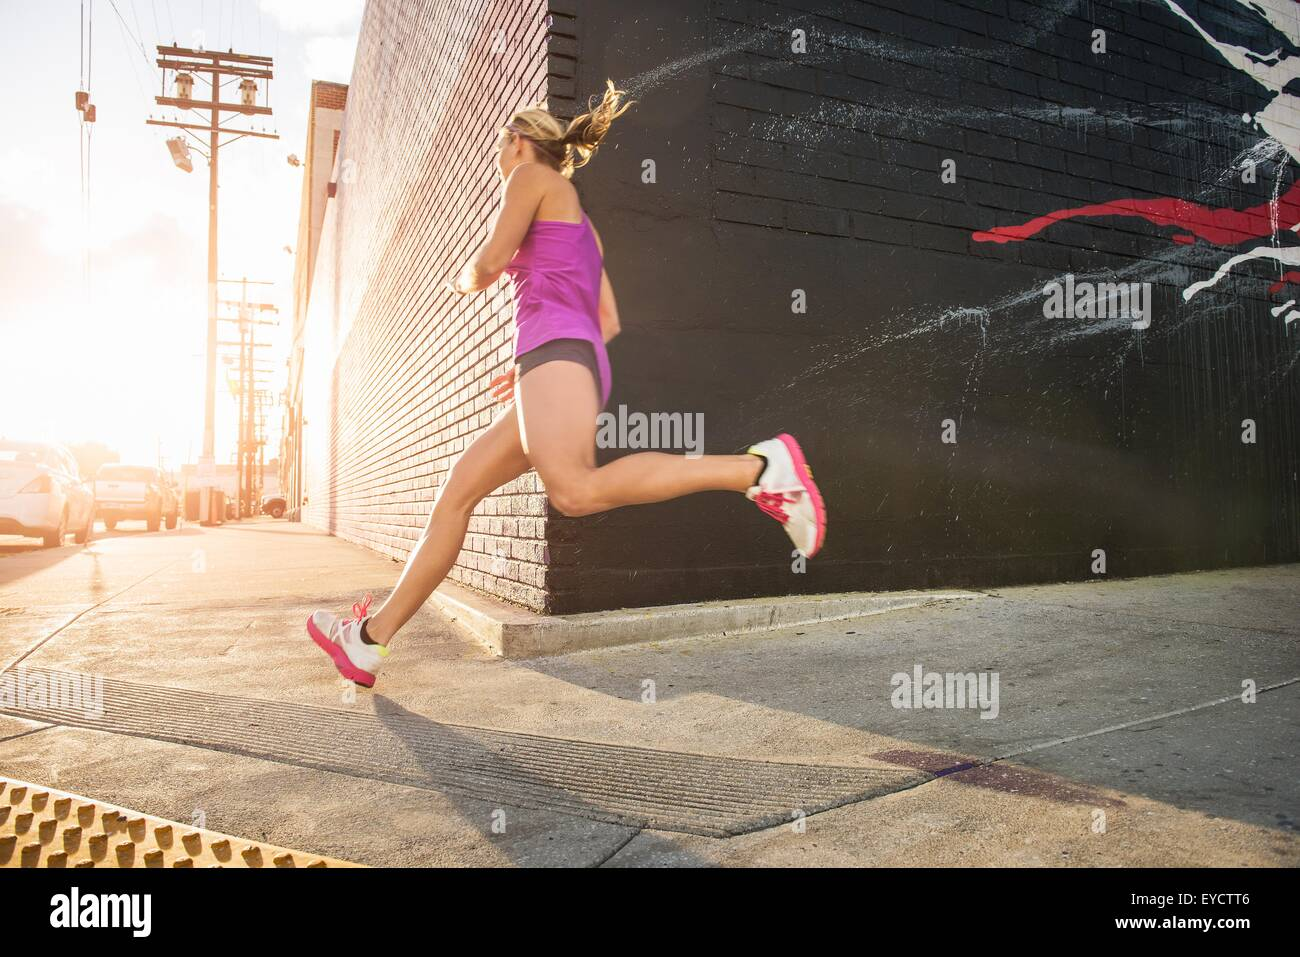 Female runner running along sidewalk - Stock Image